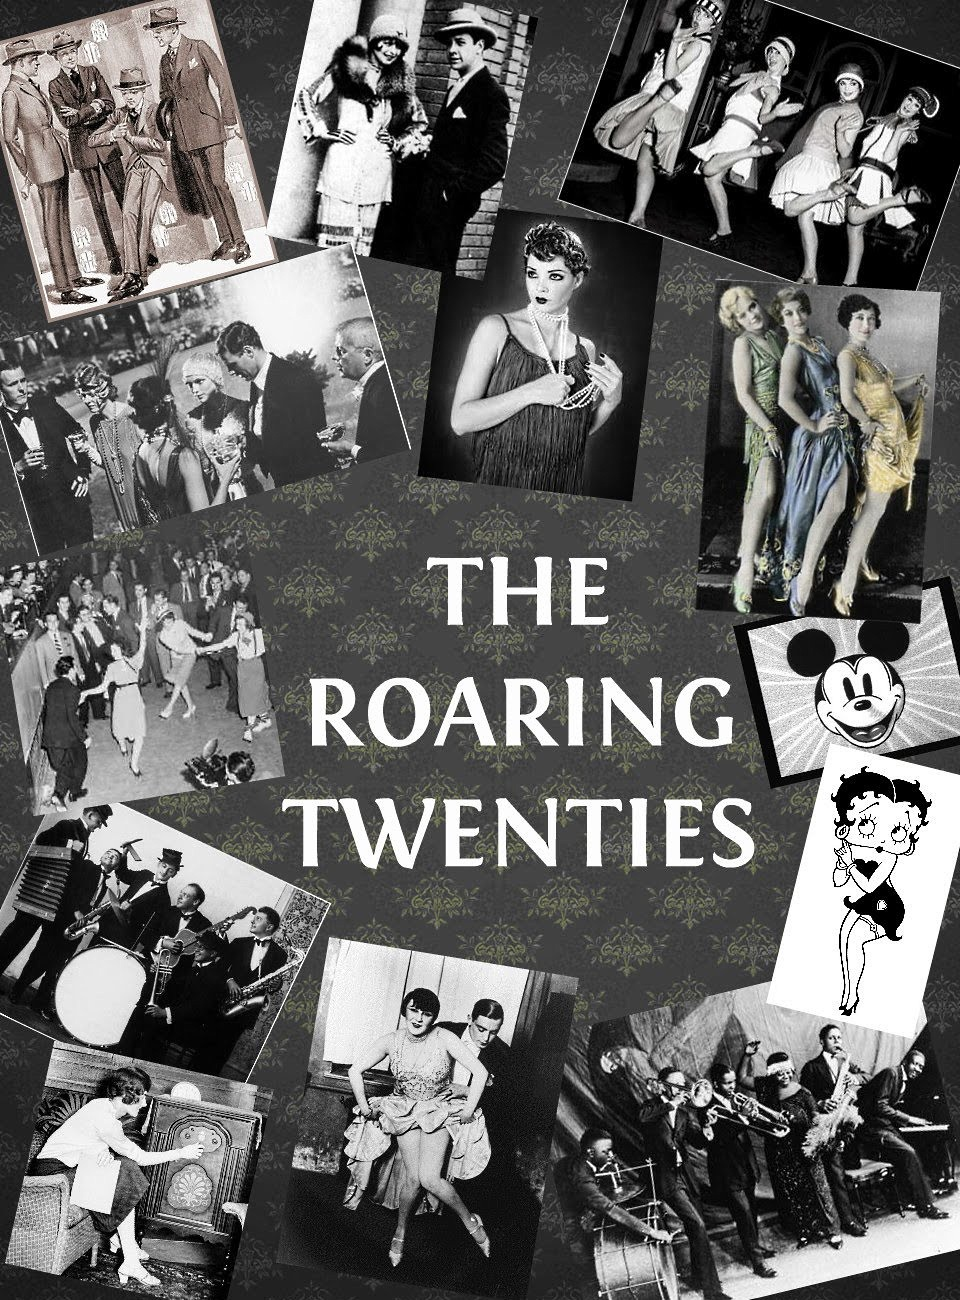 the roaring twenties The roaring twenties (1939) is action director raoul walsh's first gangster film (and first film for warner bros) [note: walsh replaced director anatole litvak at the last minute] this newsreel-like, semi-documentary, authentic-looking film, with both hard-hitting gangster genre action and.